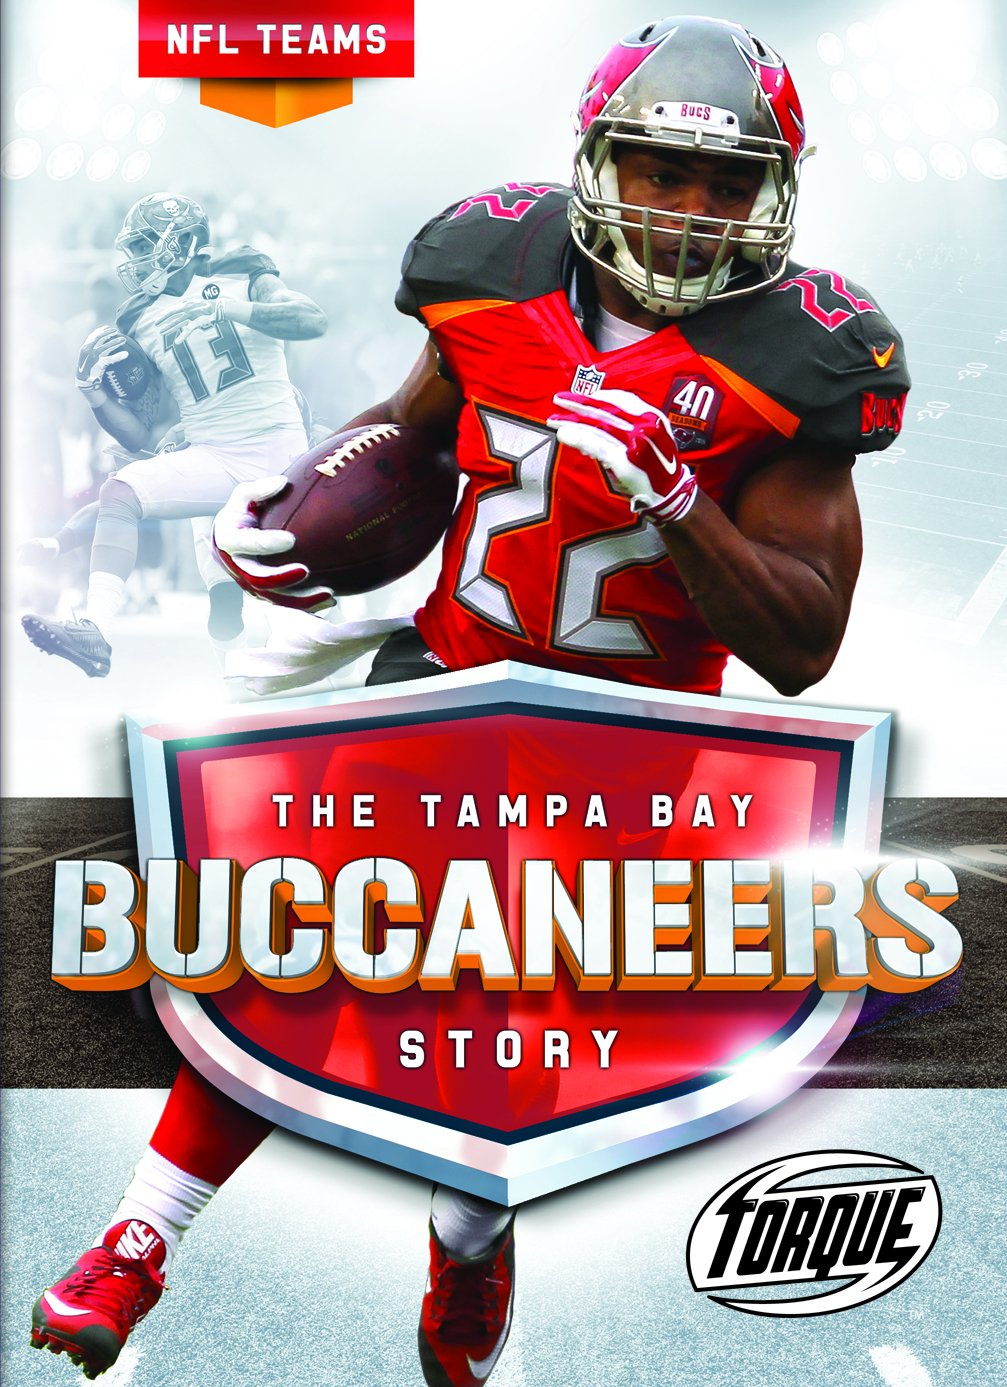 the tampa bay buccaneers story nfl teams larry mack 9781626173842 amazon com books tampa bay buccaneers story nfl teams